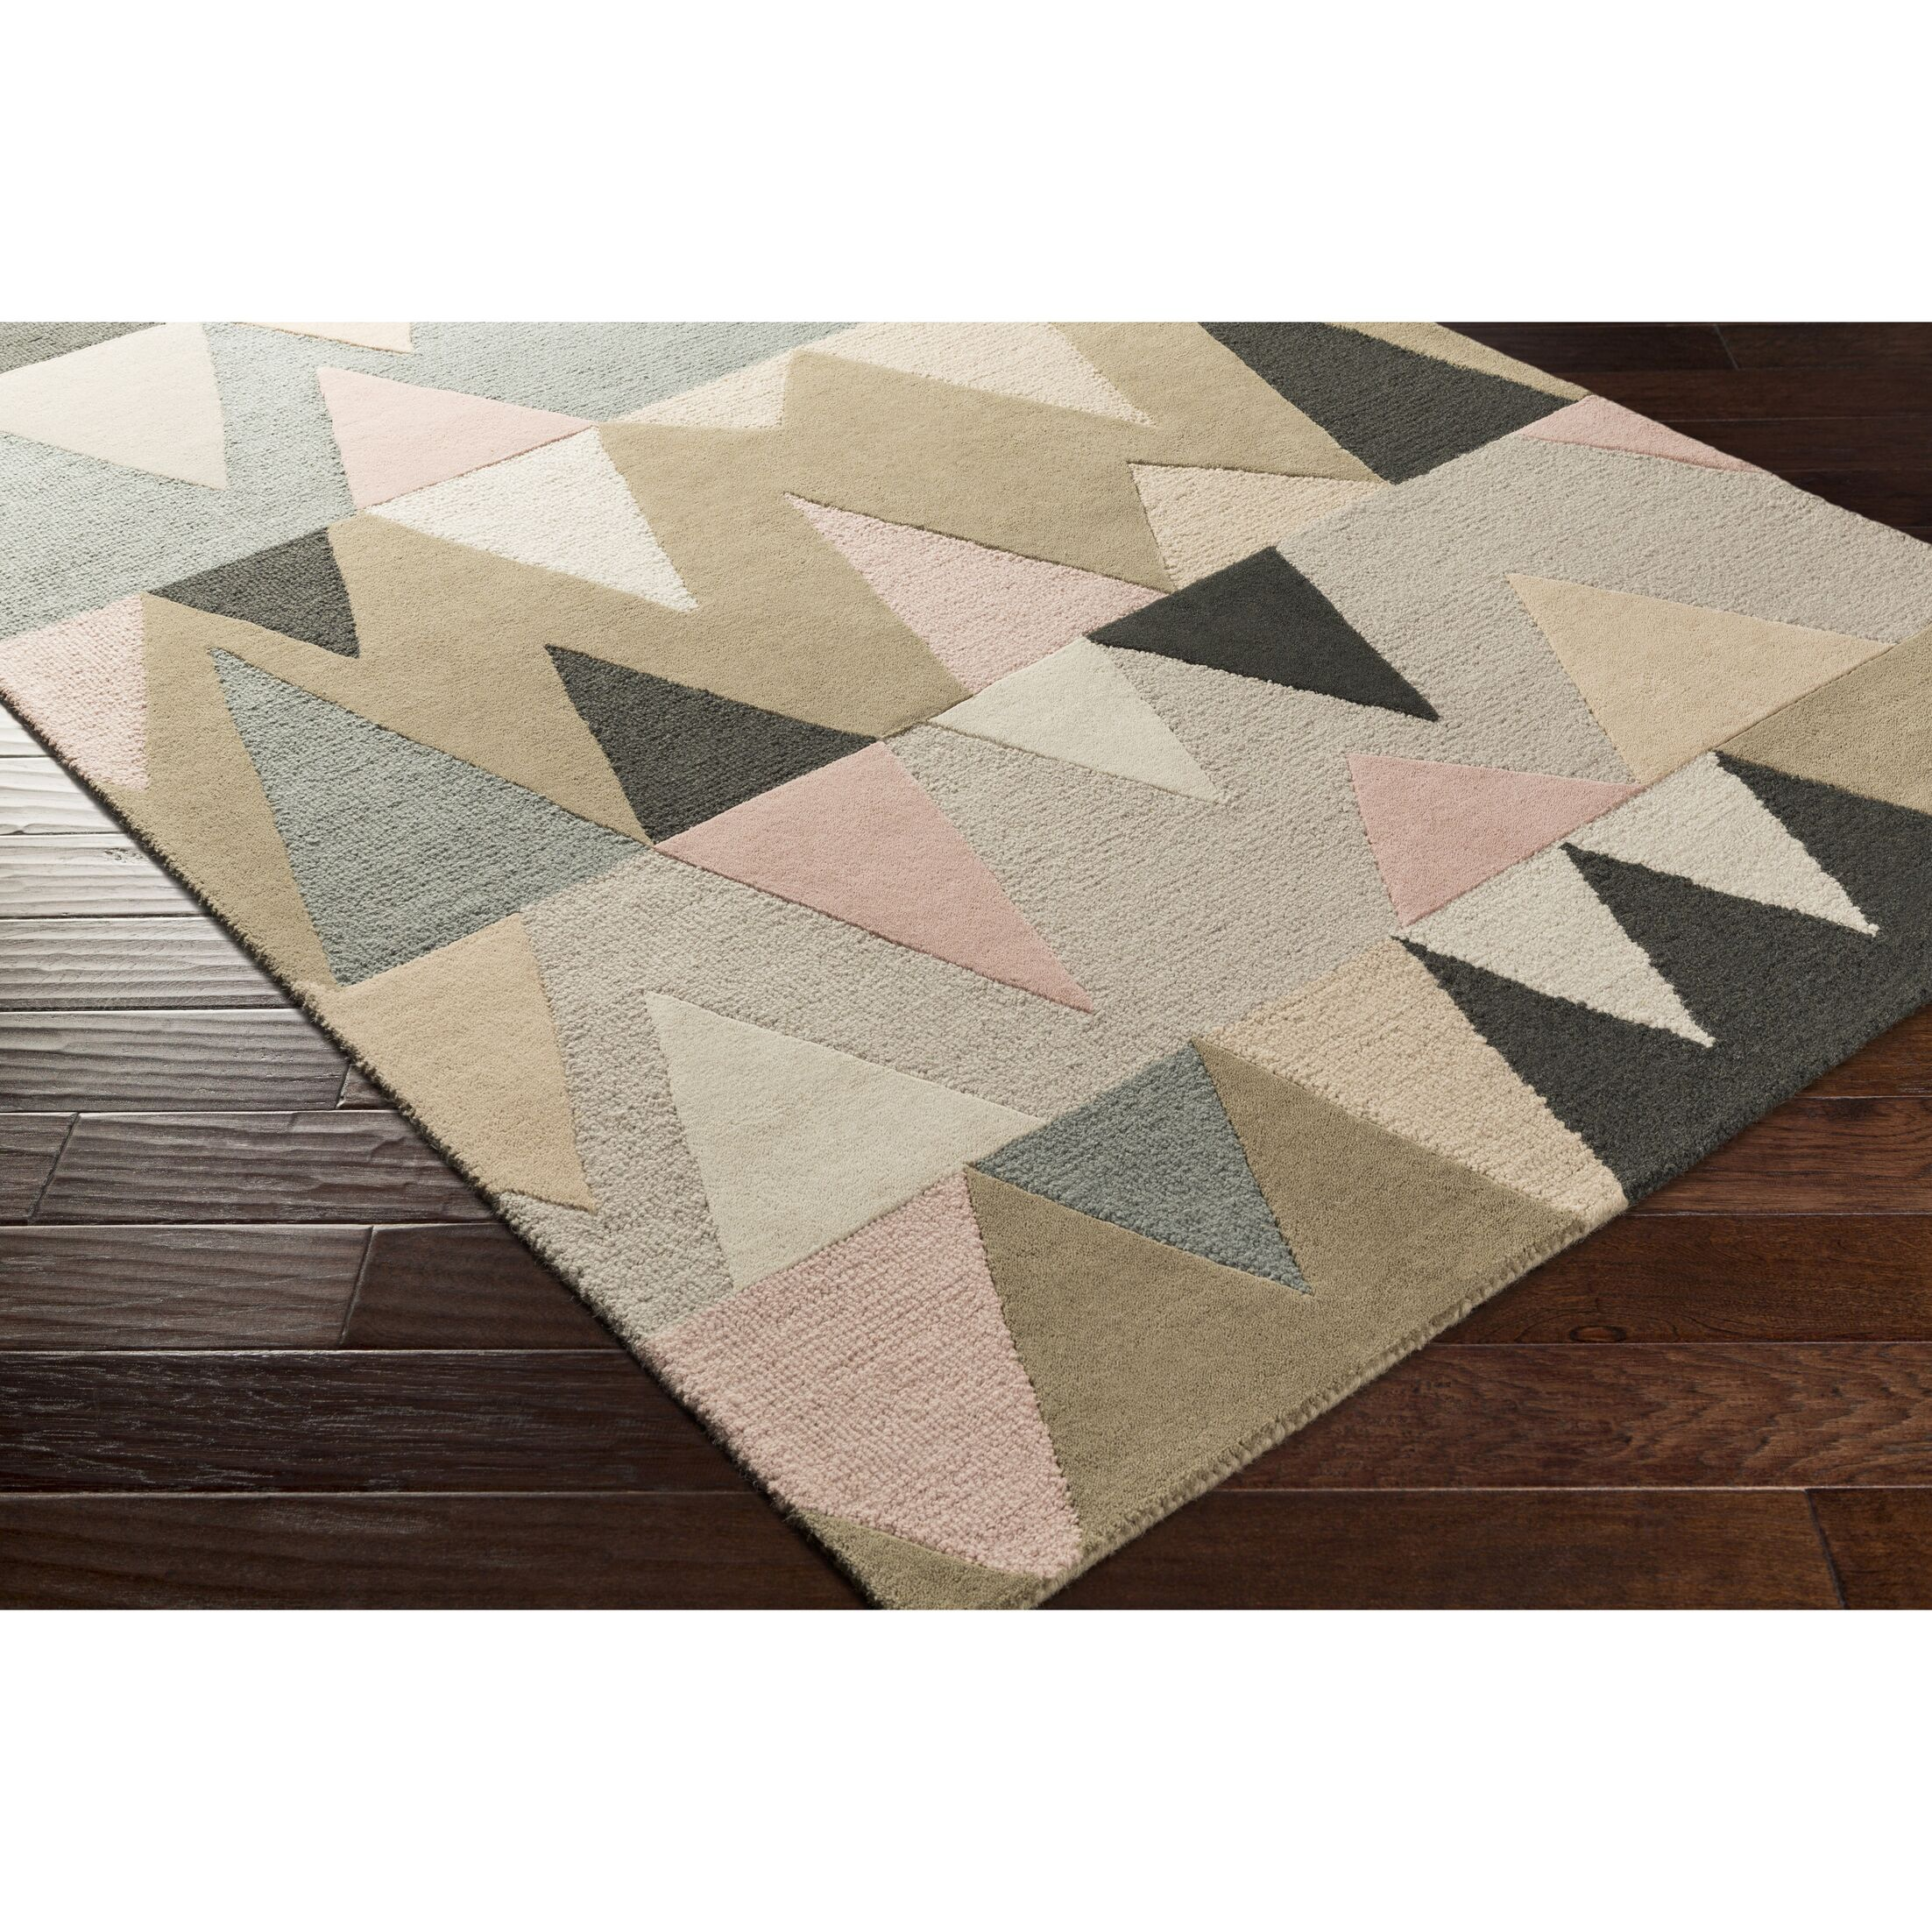 Nida Hand-Tufted Brown/Blue Area Rug Rug Size: Rectangle 4' x 6'